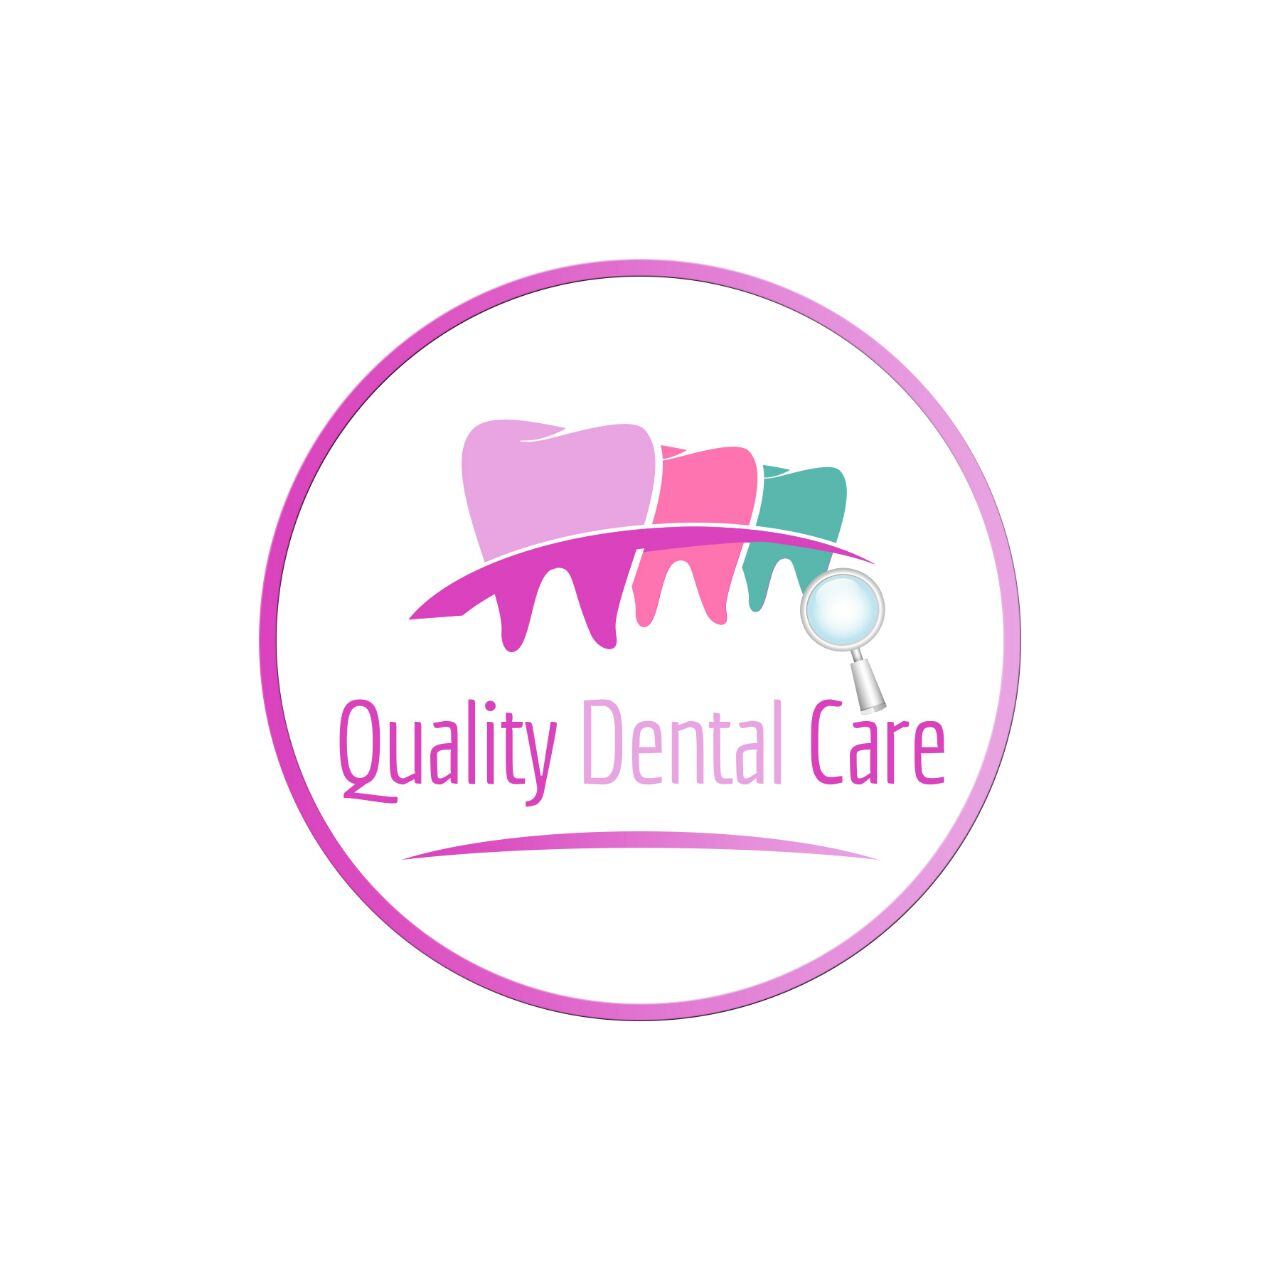 Quality Dental Care Jatibening